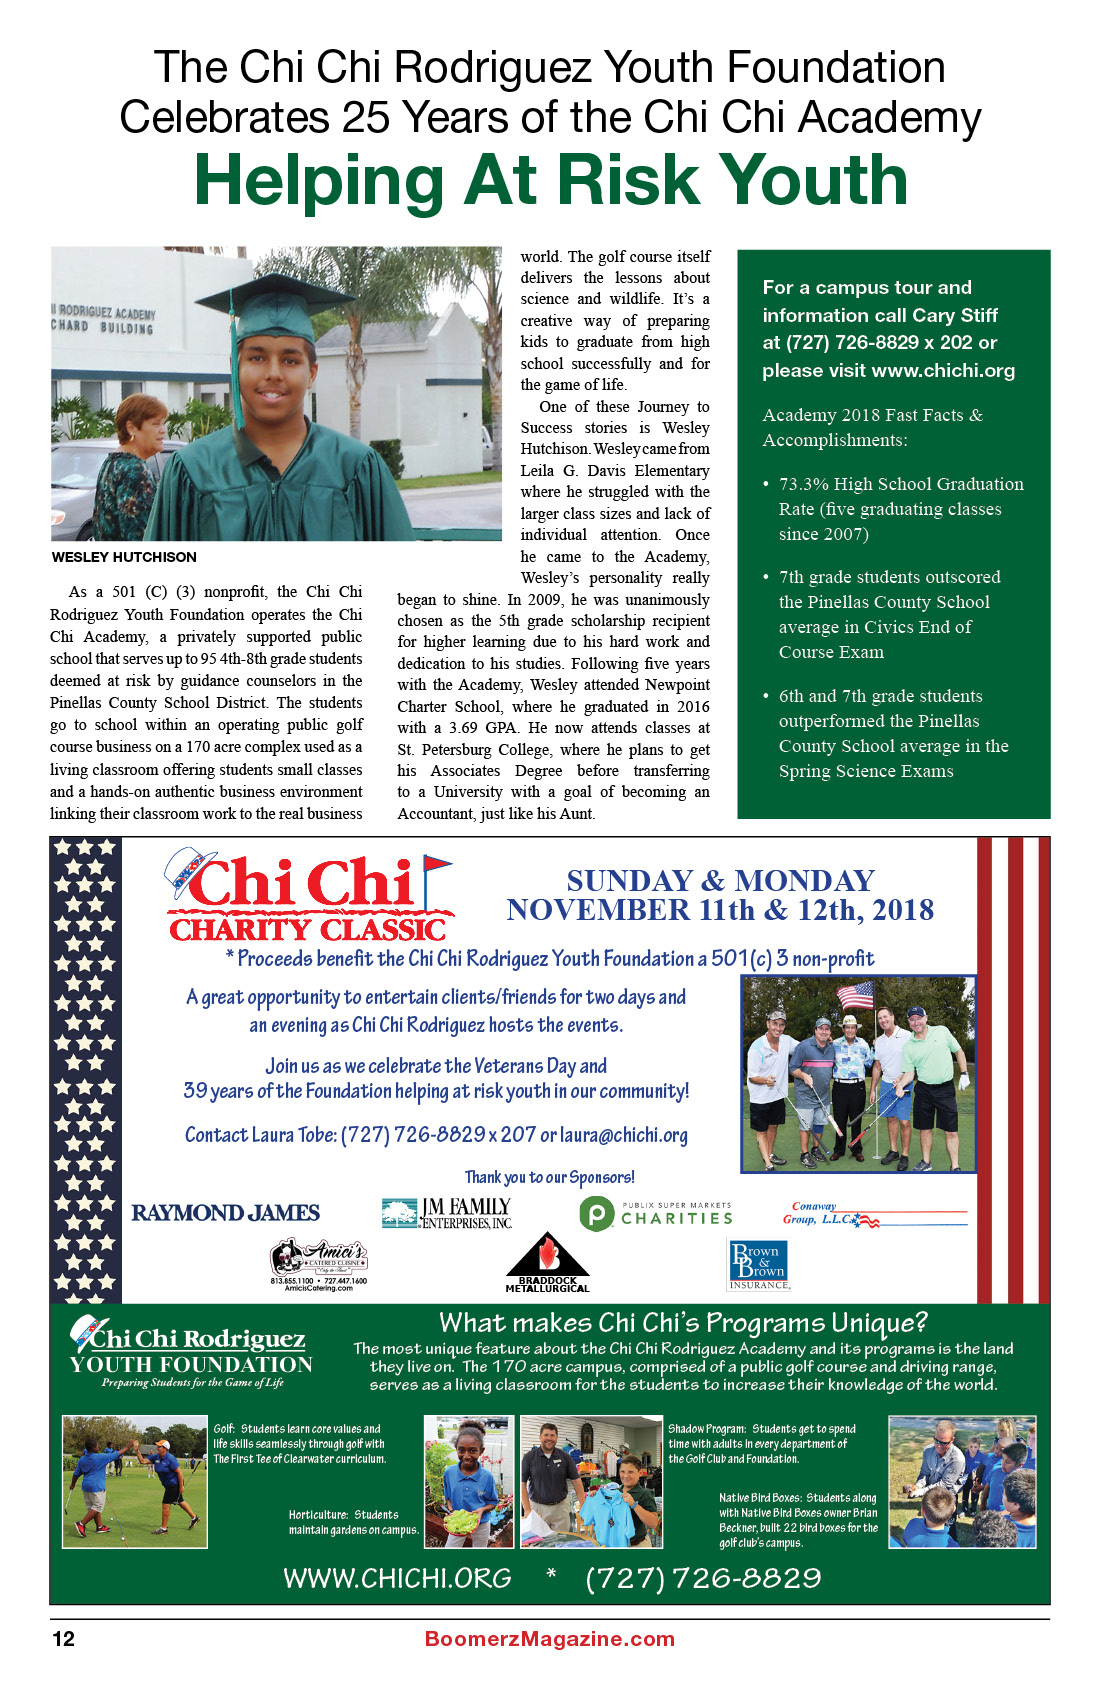 2018 October Boomerz Magazine Page 12 Add for Chi Chi Rodriguez Youth Foundation